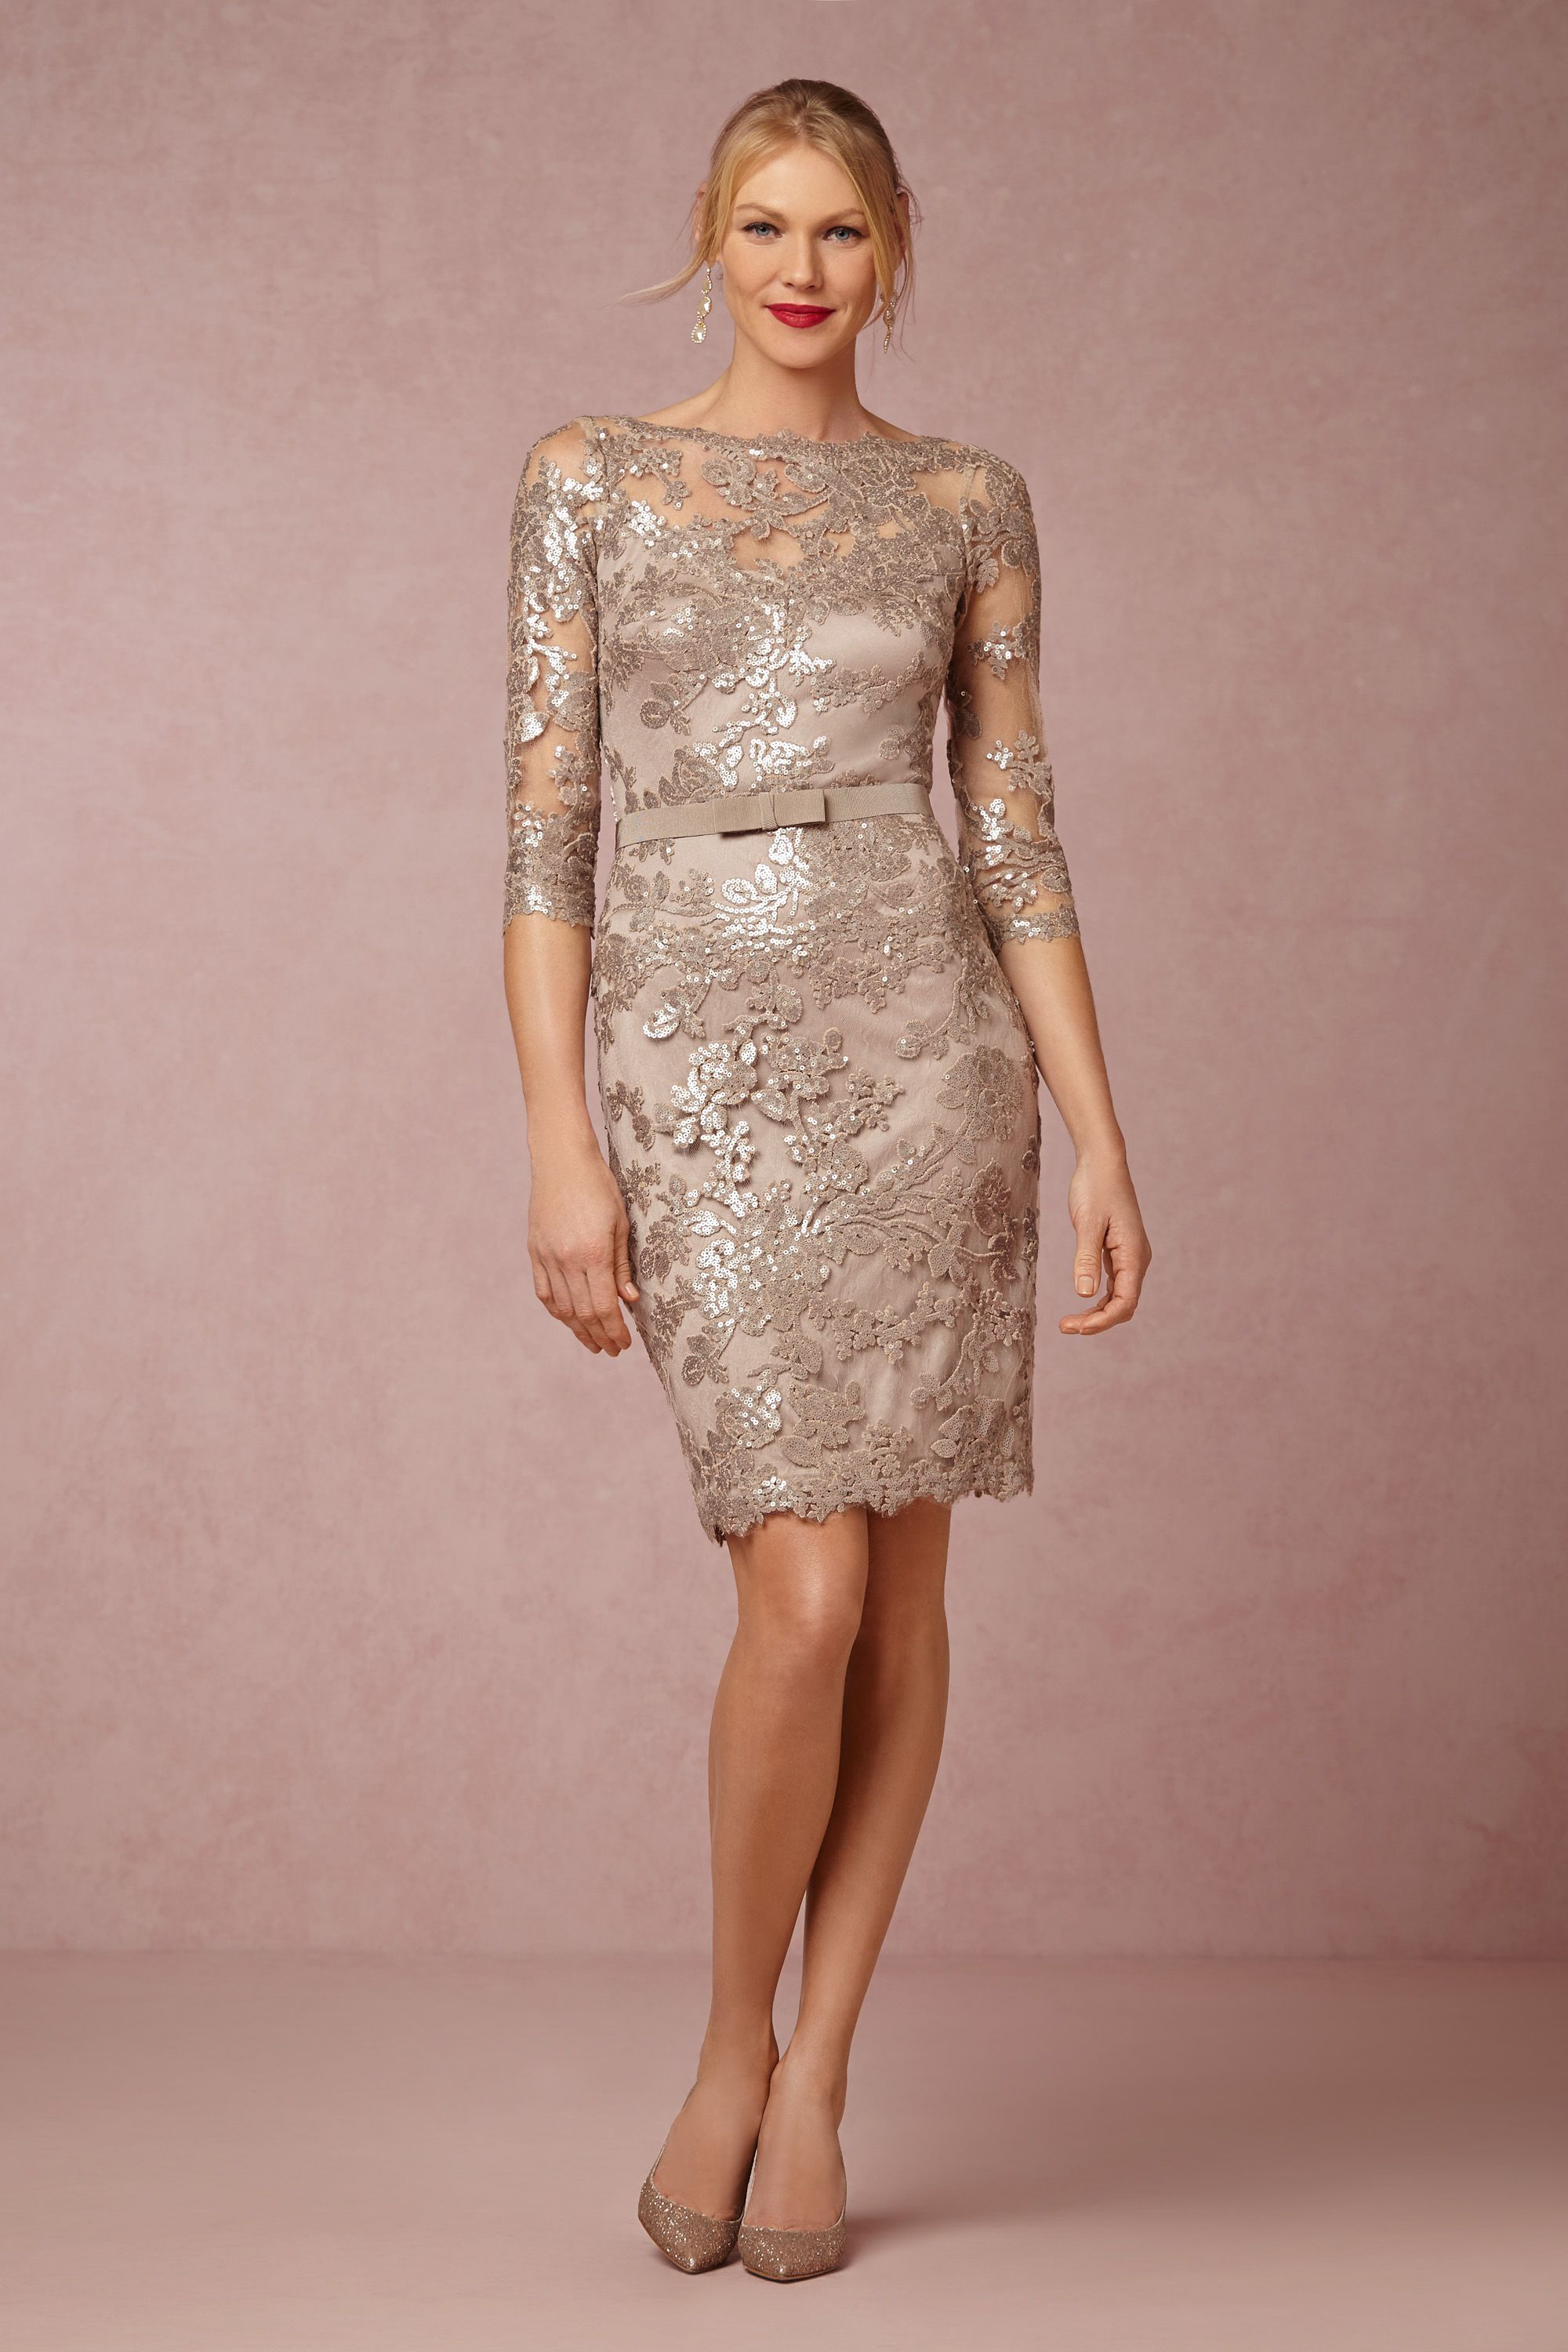 Liv Dress from @BHLDN $100 | outfits | Pinterest | Vestidos para ...